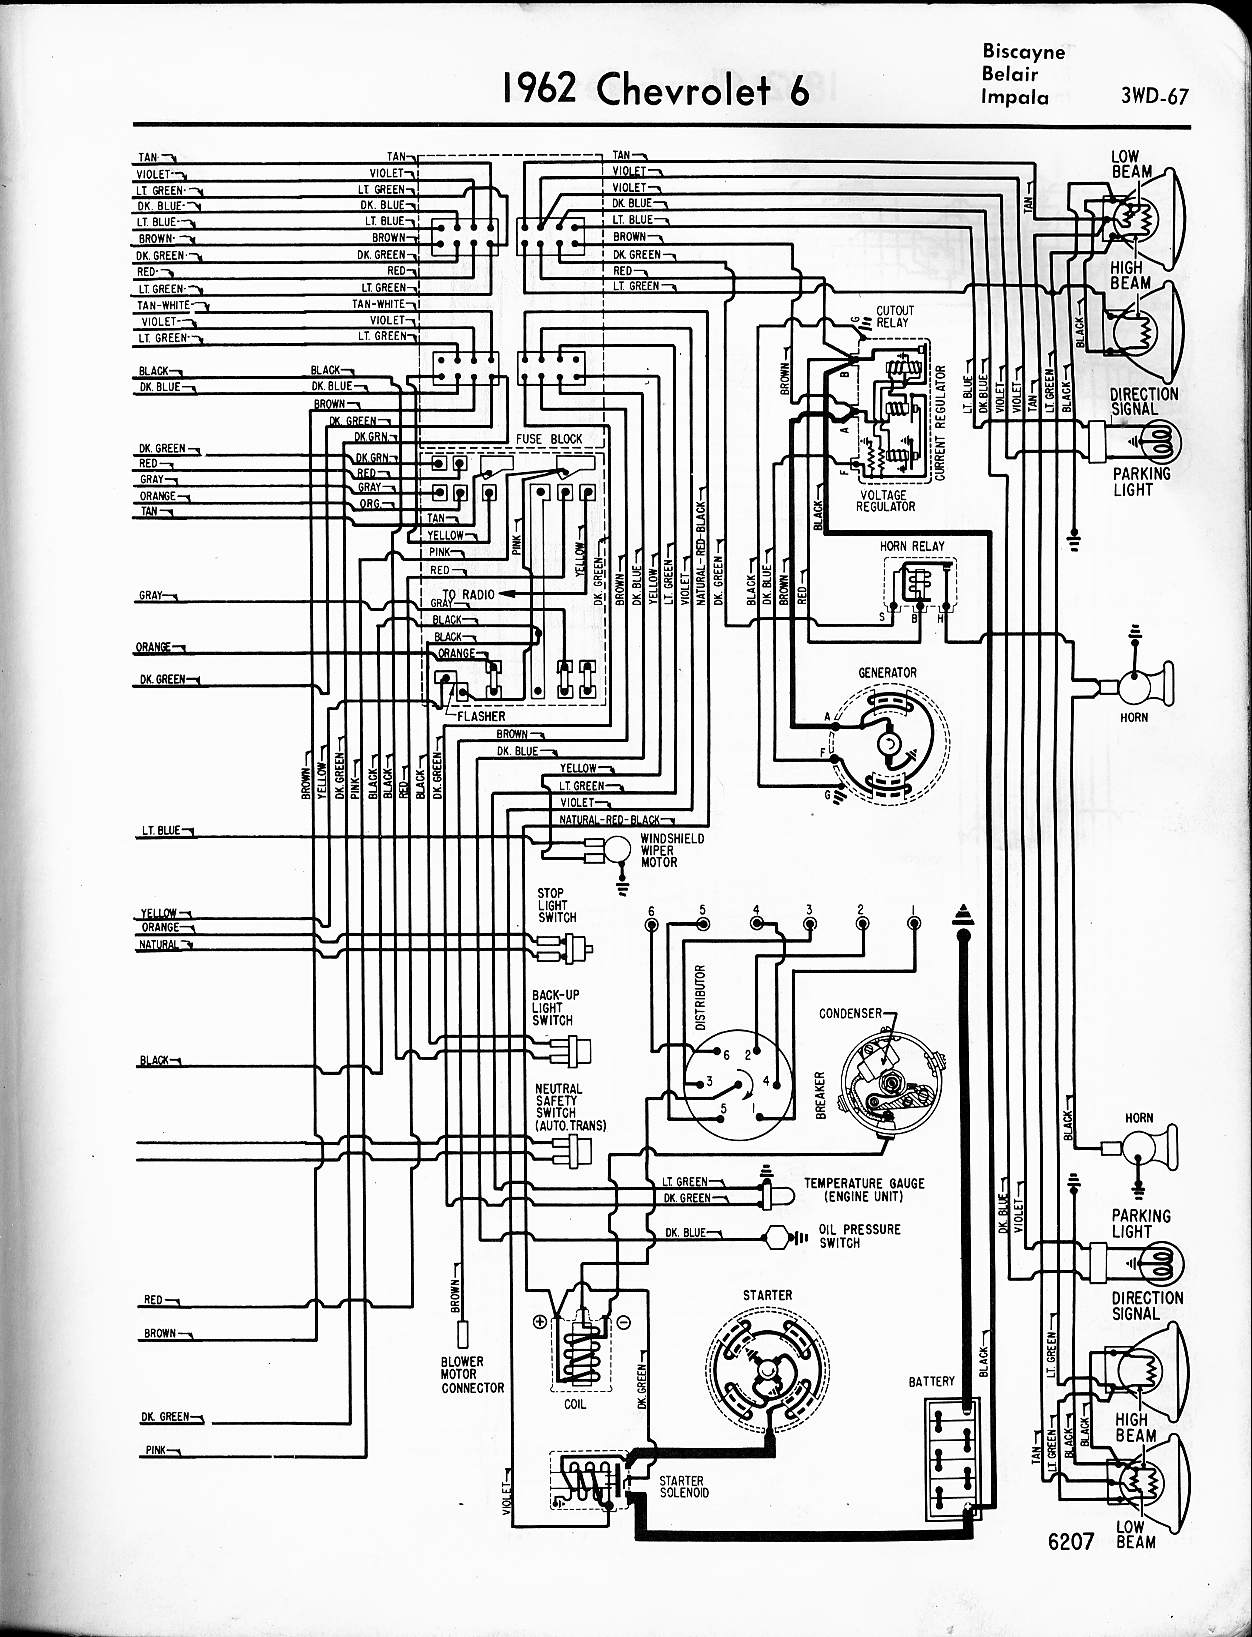 62 impala wiring diagrams light switch wiring diagrams show  62 impala wiring diagrams light switch #2